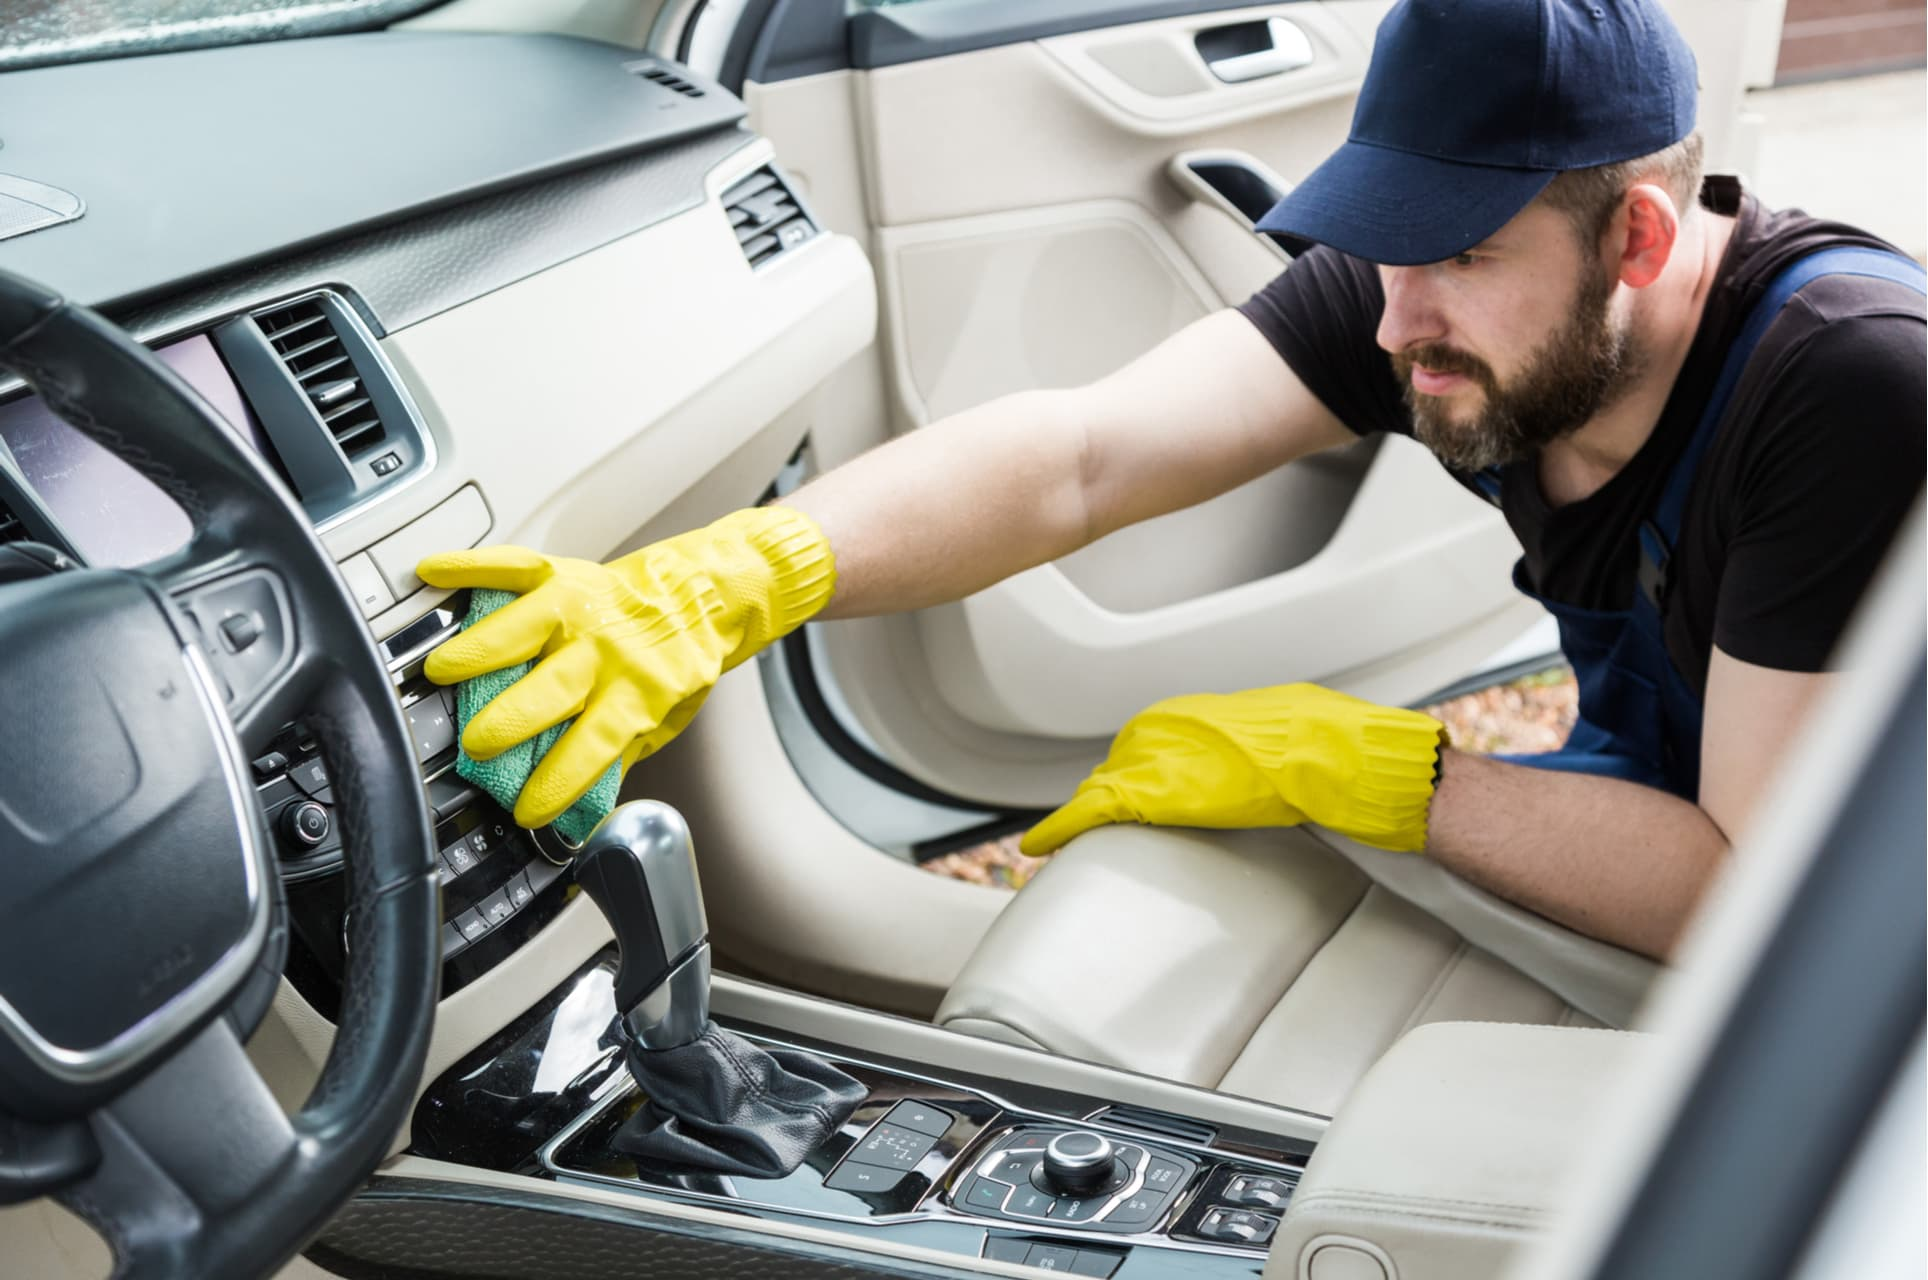 A Step-by-Step Guide On How To Clean Your Car